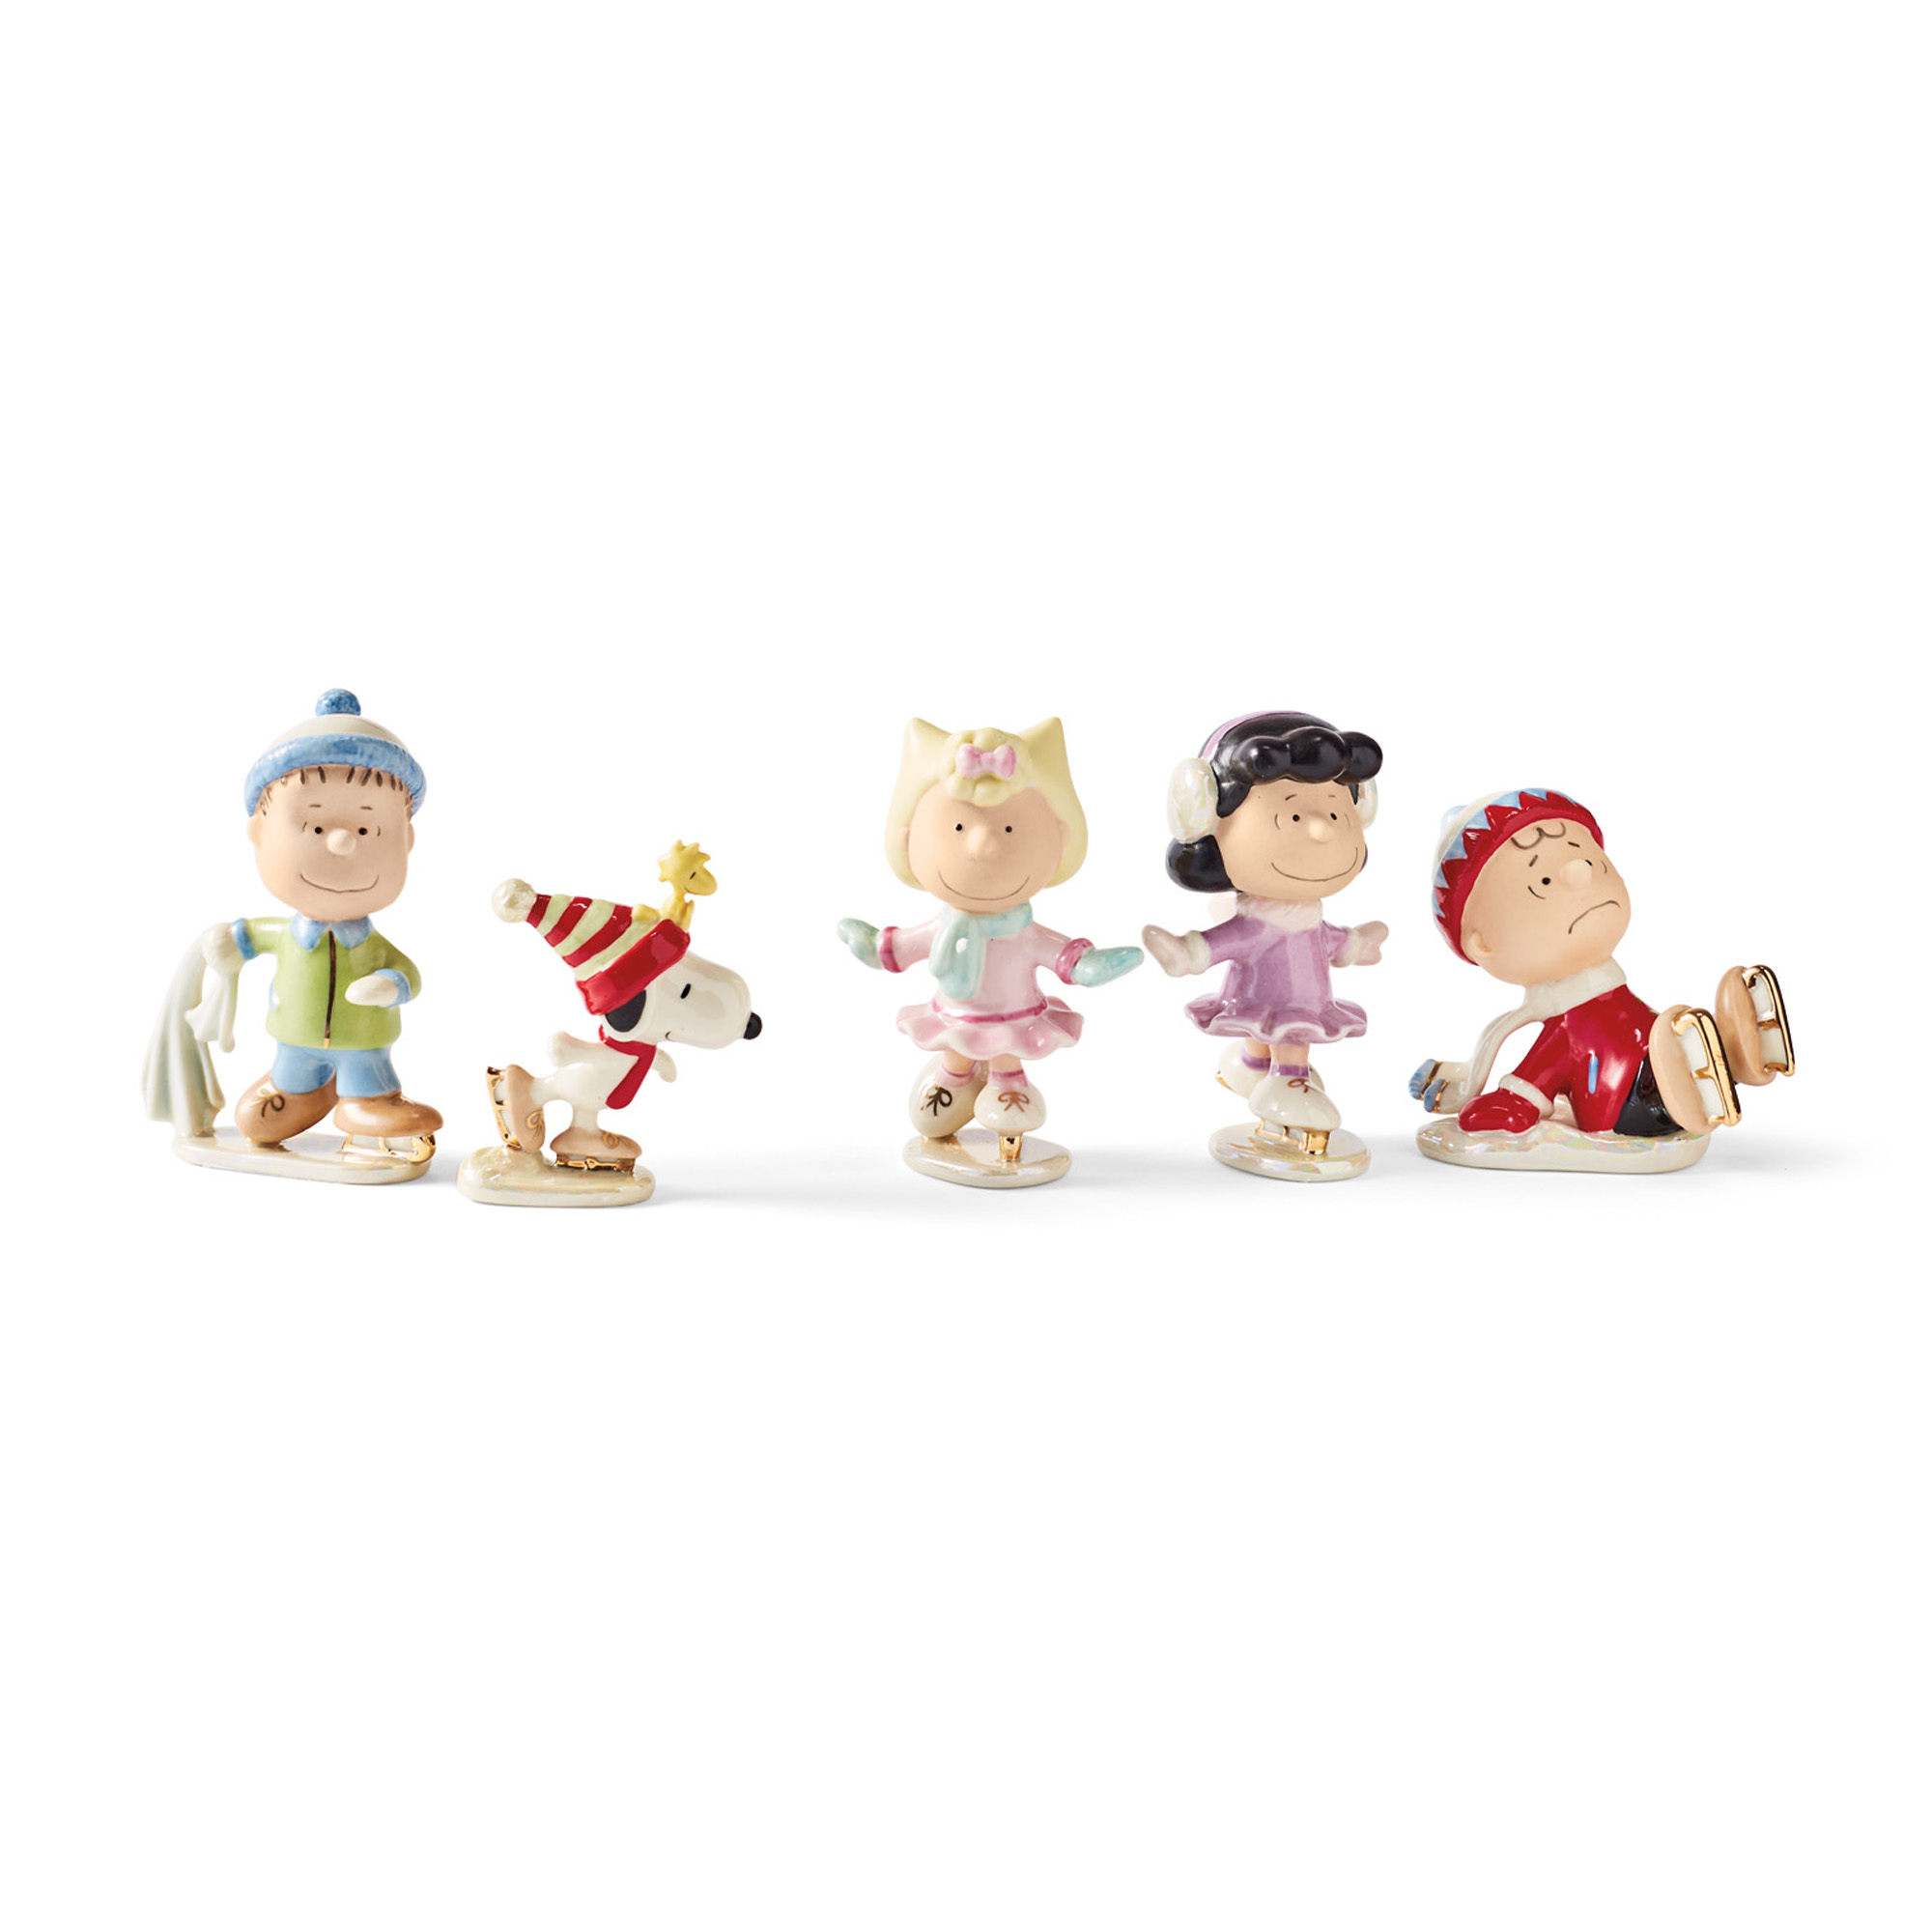 Peanuts Ice Skating Party Set